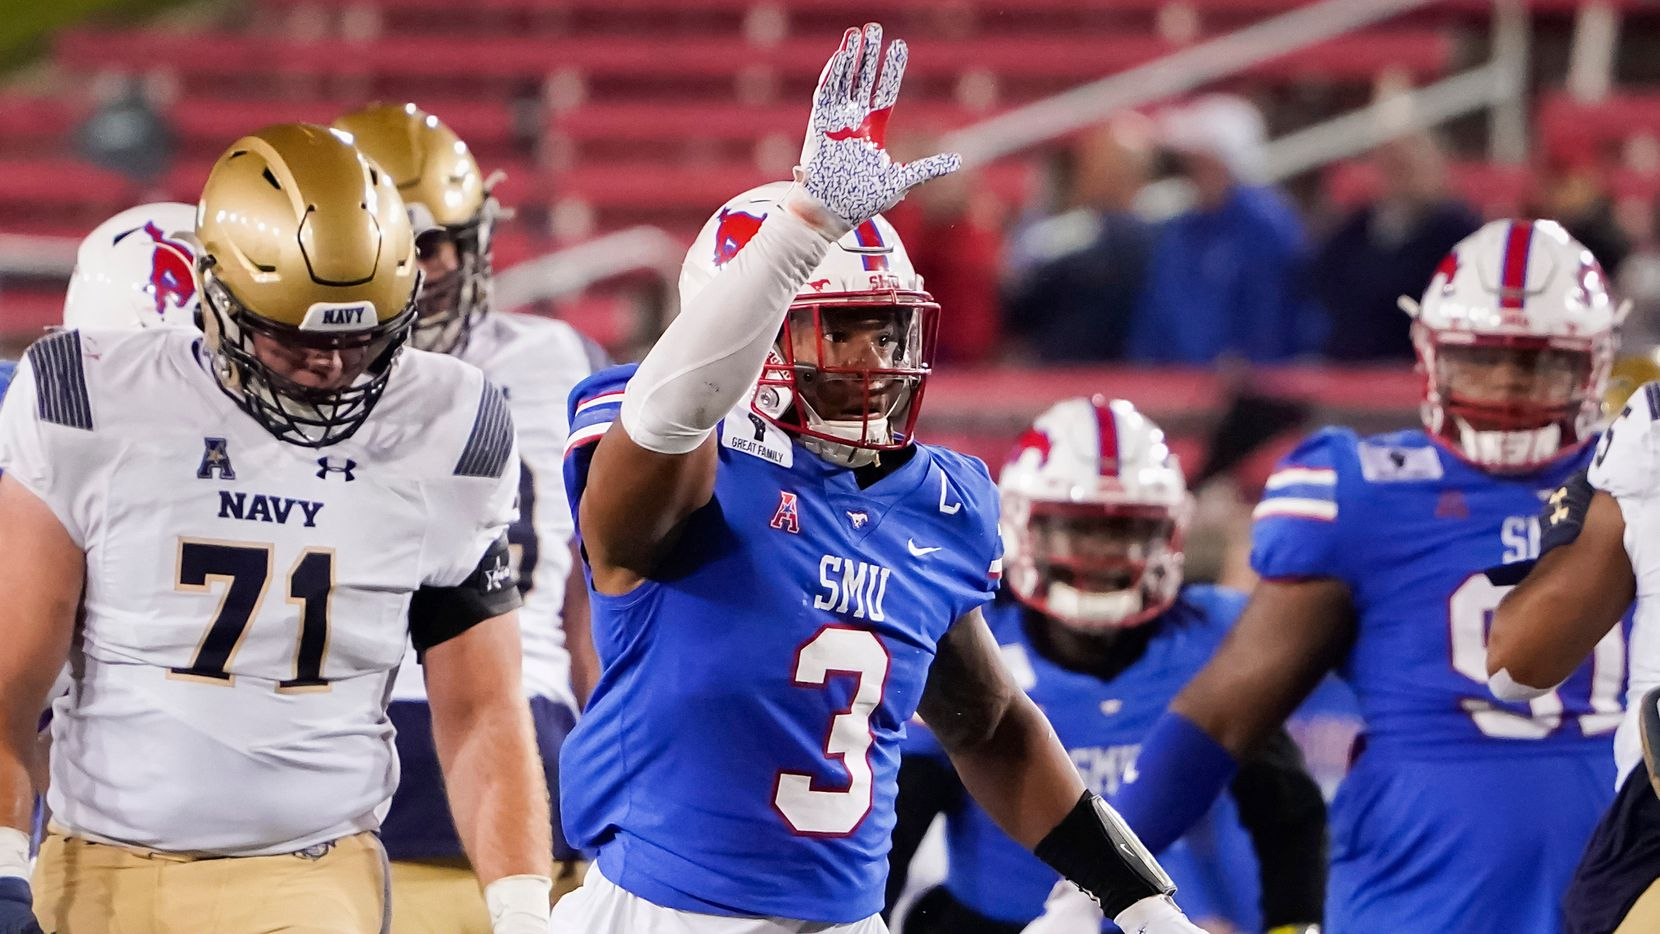 SMU linebacker Delano Robinson (3) celebrates after sacking Navy quarterback Dalen Morris (8) during the third quarter of a game at Ford Stadium on Saturday, Oct. 31, 2020, in Dallas.